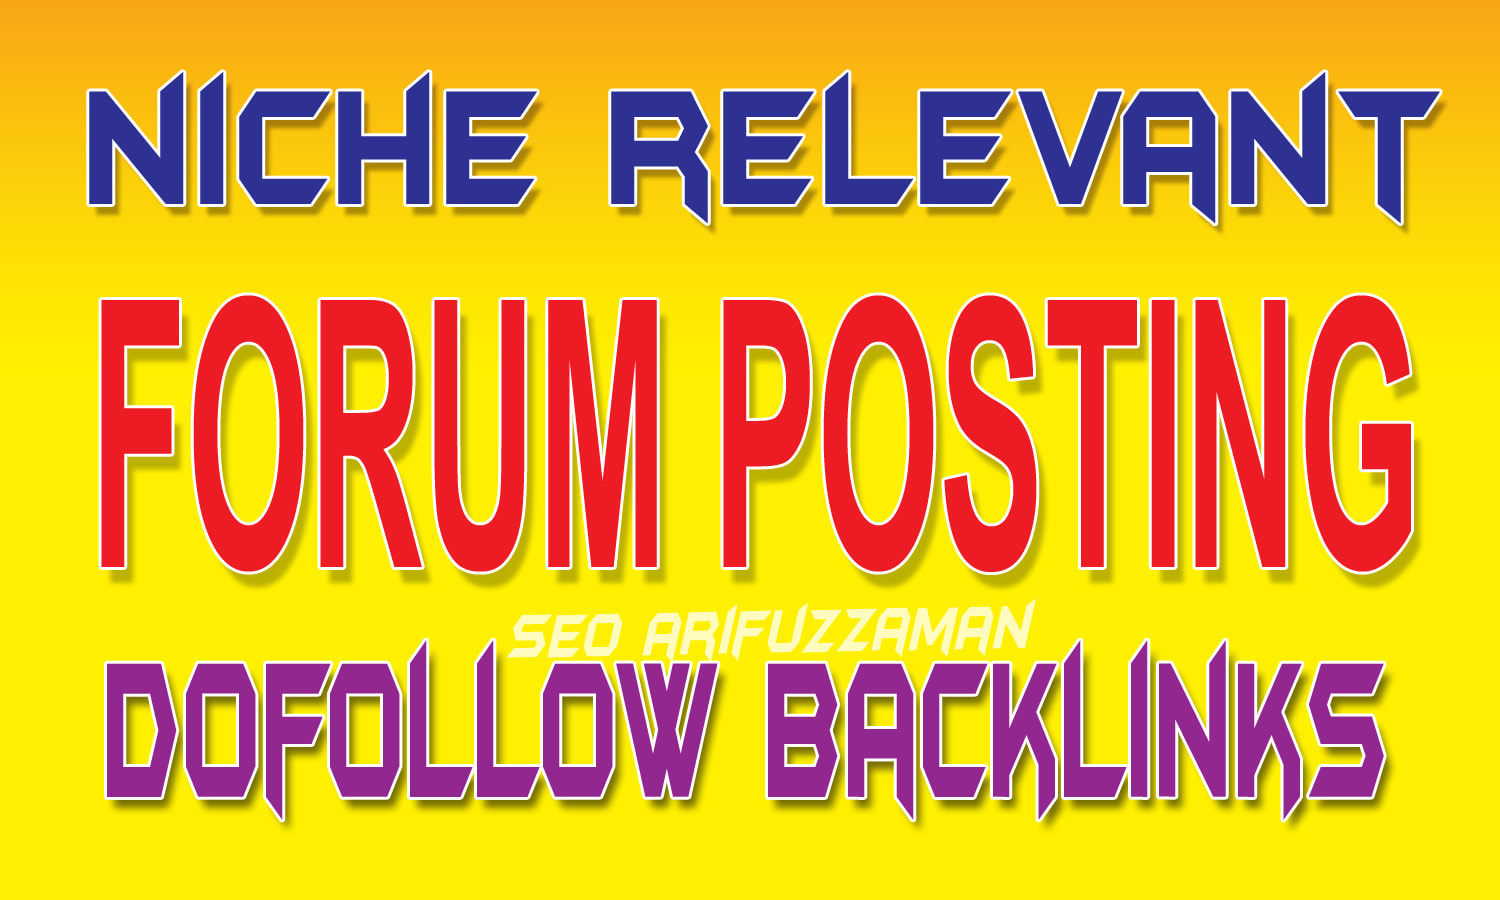 create forum posting,  high quality forum backlinks with niche relevant